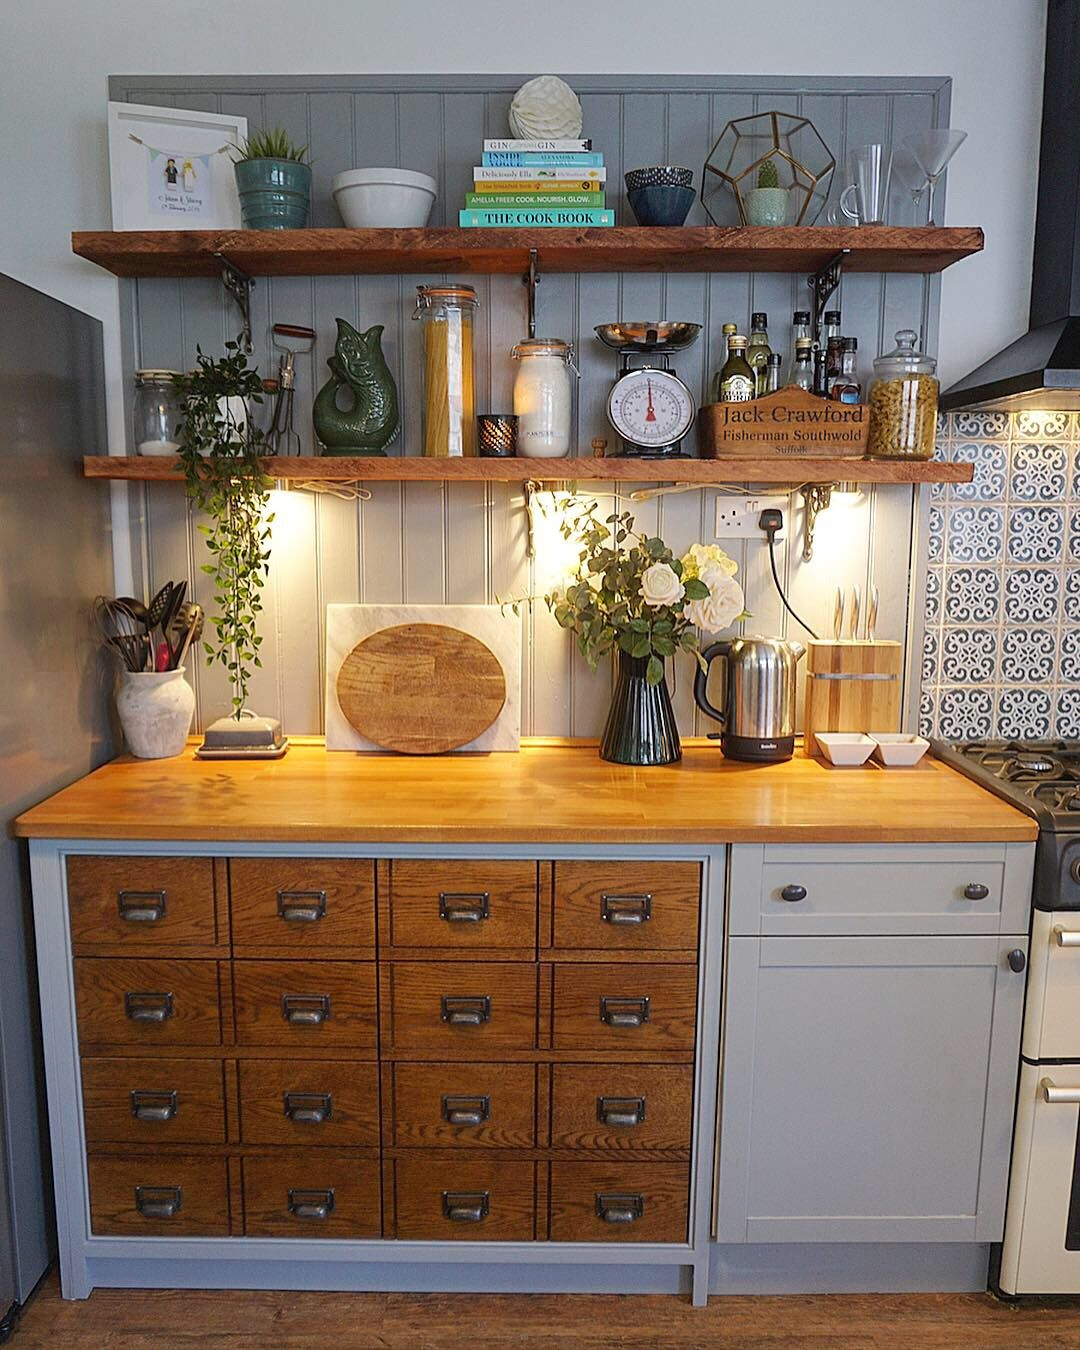 Pin By Courtney Wesson On Konyhak Kitchen Cabinet Styles Cabinet Decor Home Decor